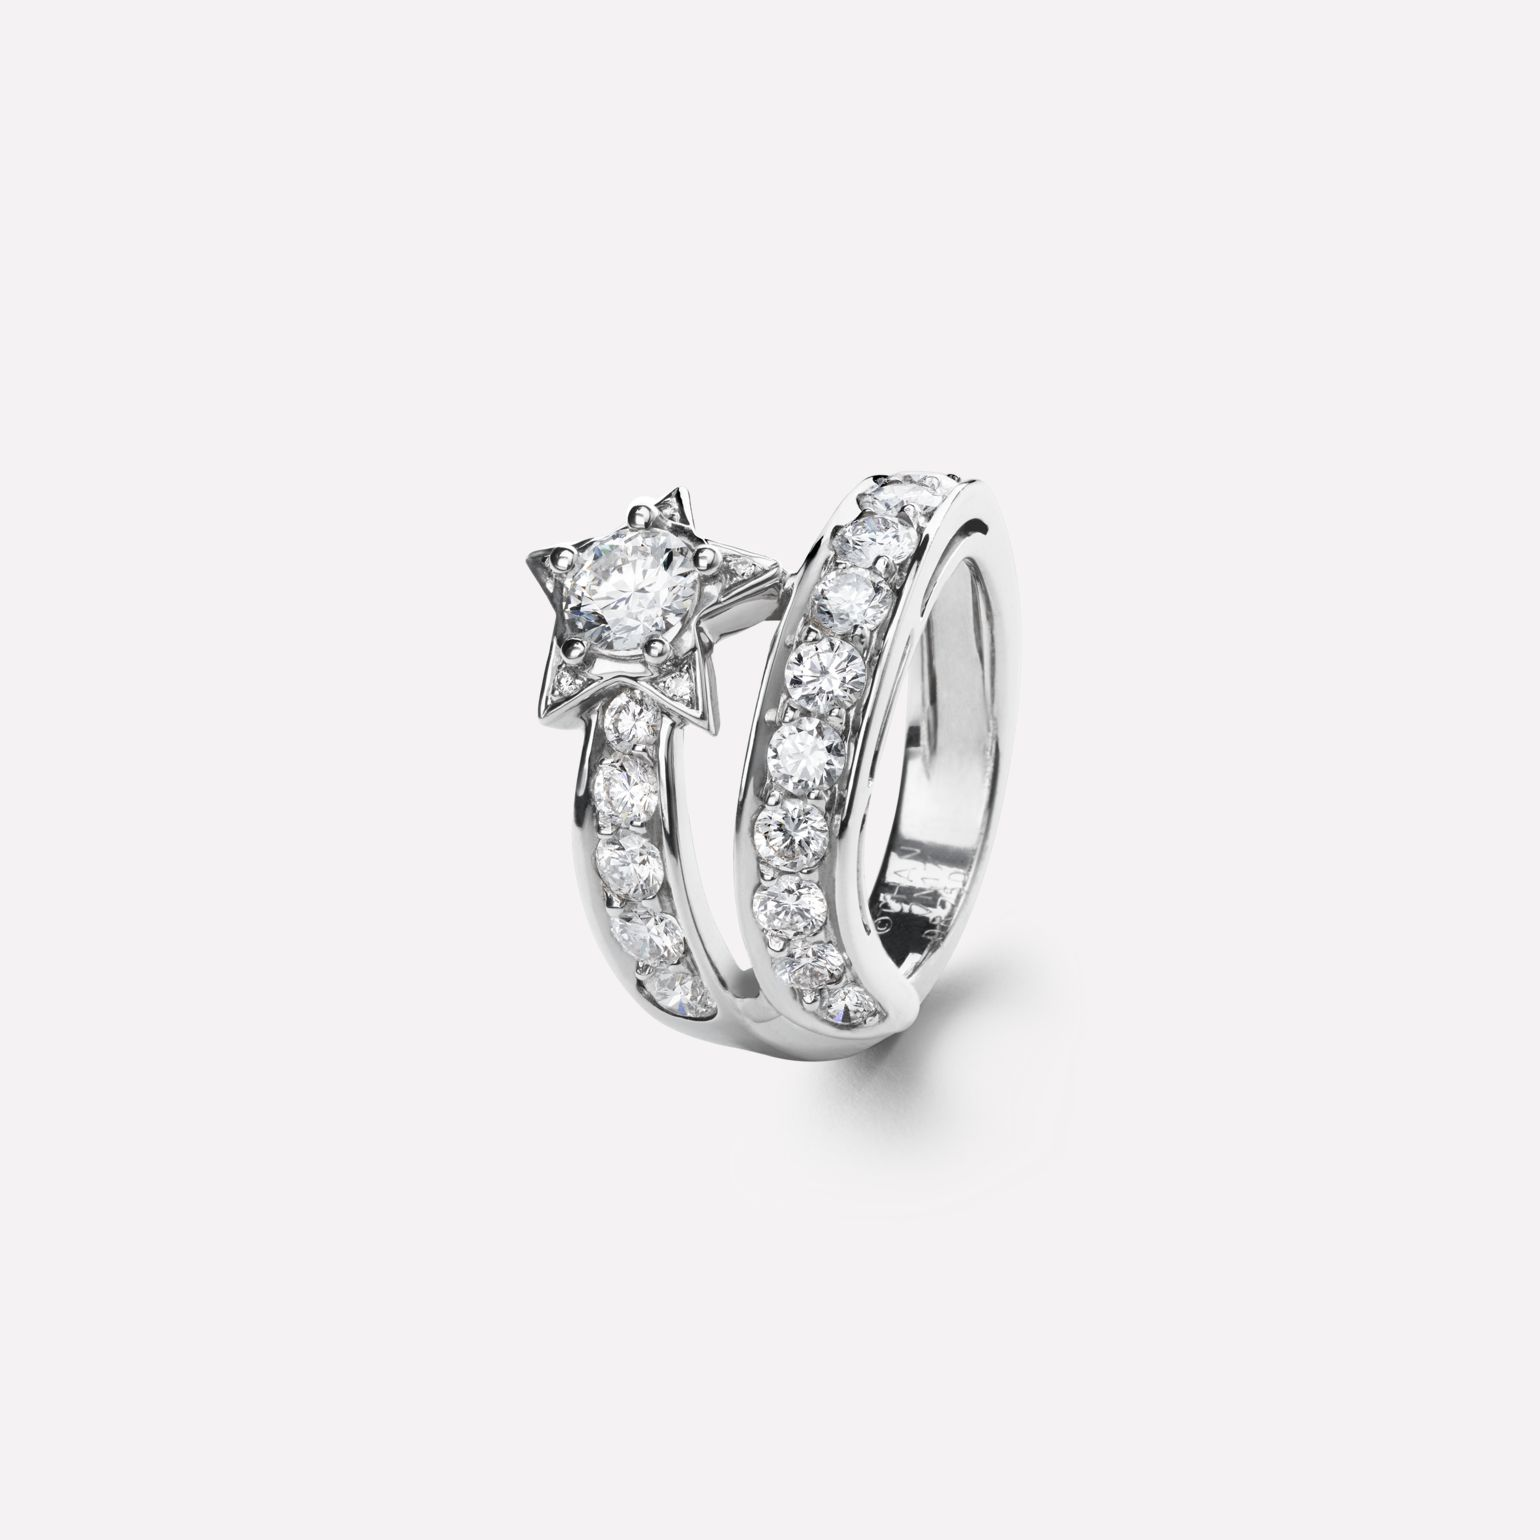 Bague Comète Motif étoile filante en or blanc 18 carats, diamants et diamant de centre